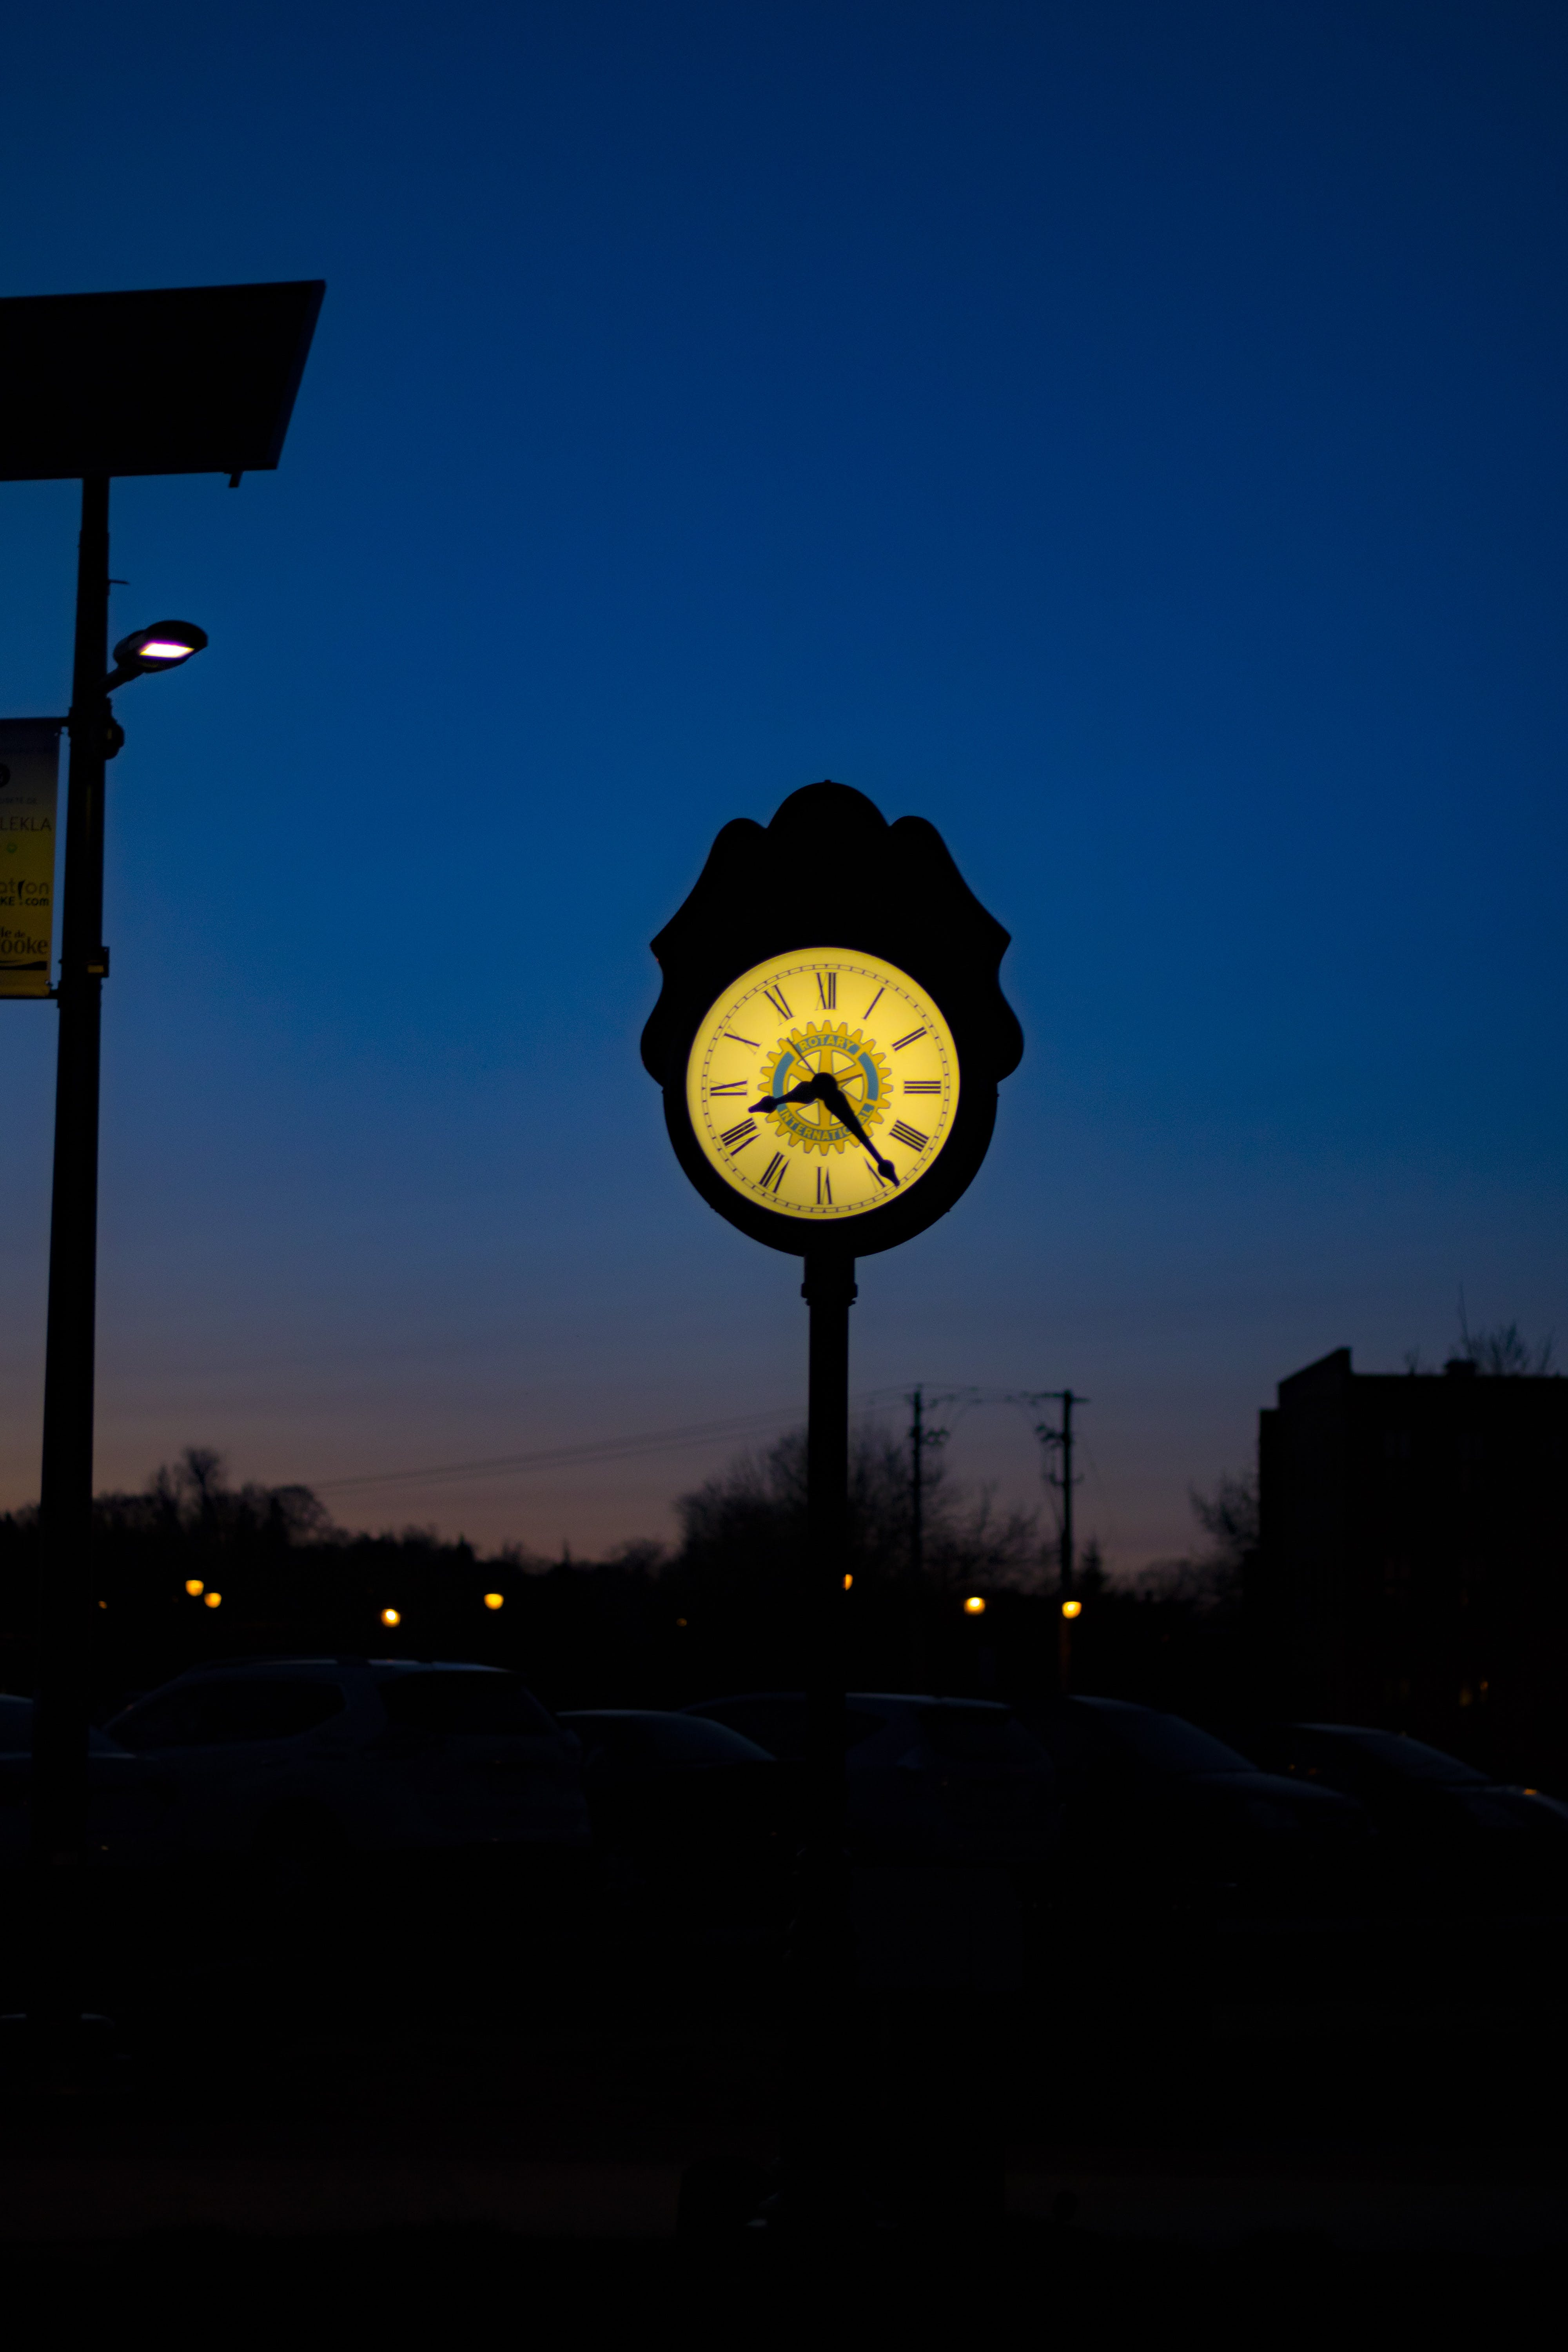 Silhouette of Clock Tower at 8:25